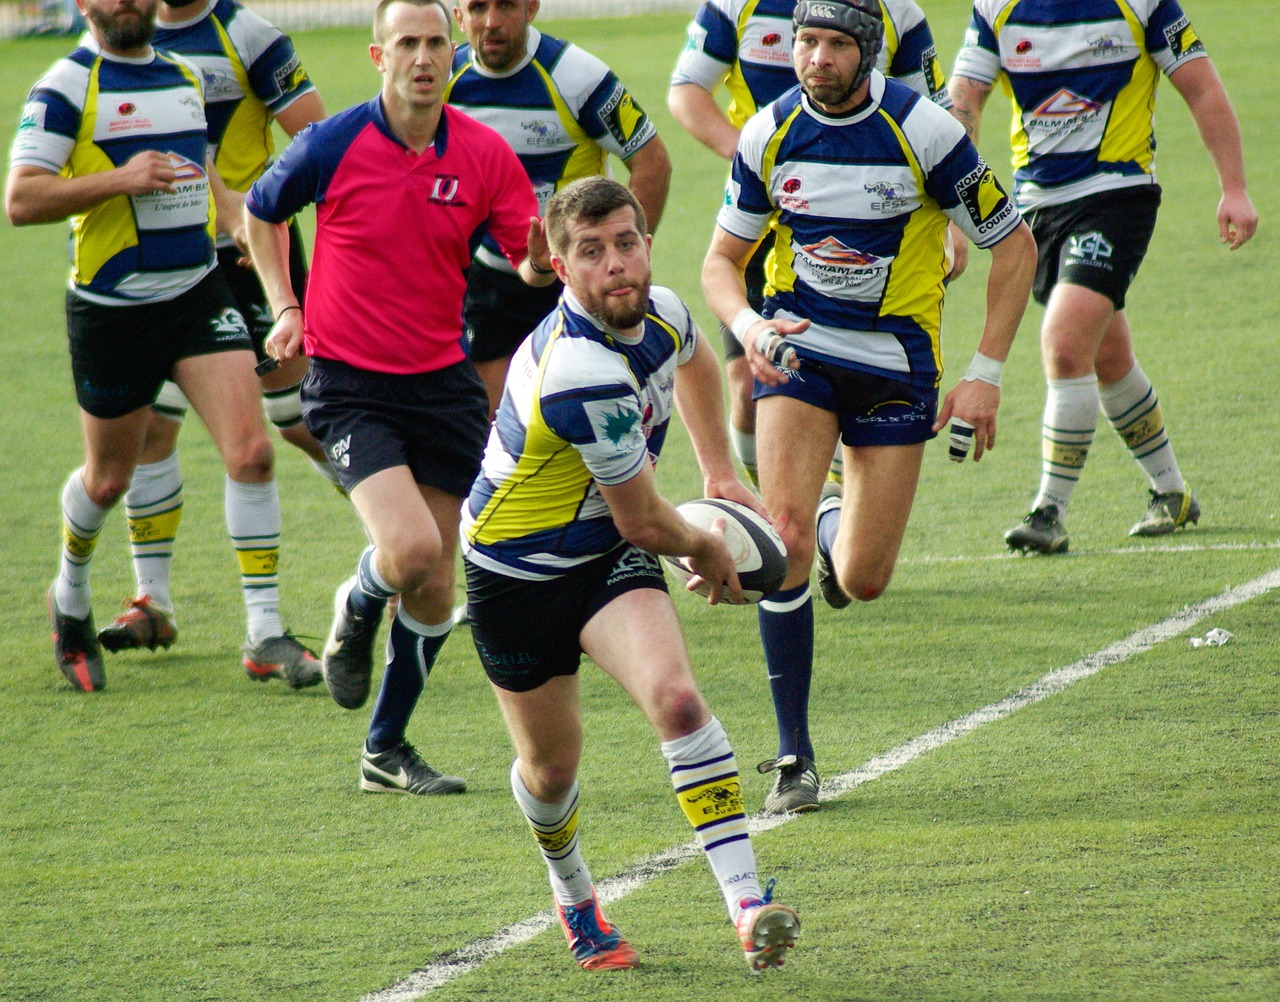 xv-rugby-655020_1280